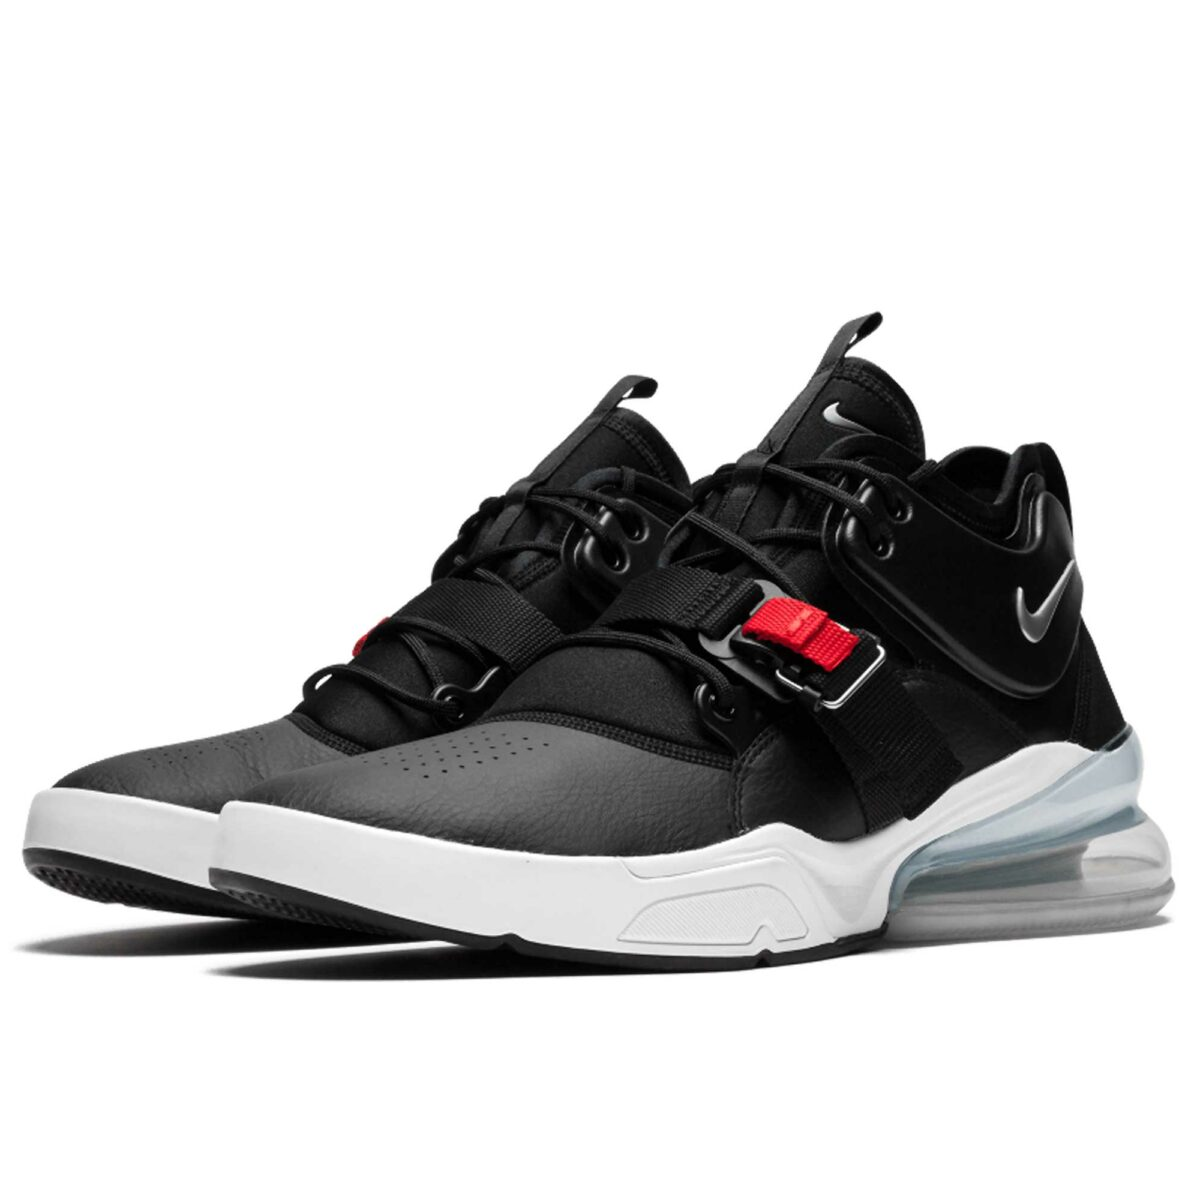 nike air force 270 black metallic AH6772-001 купить